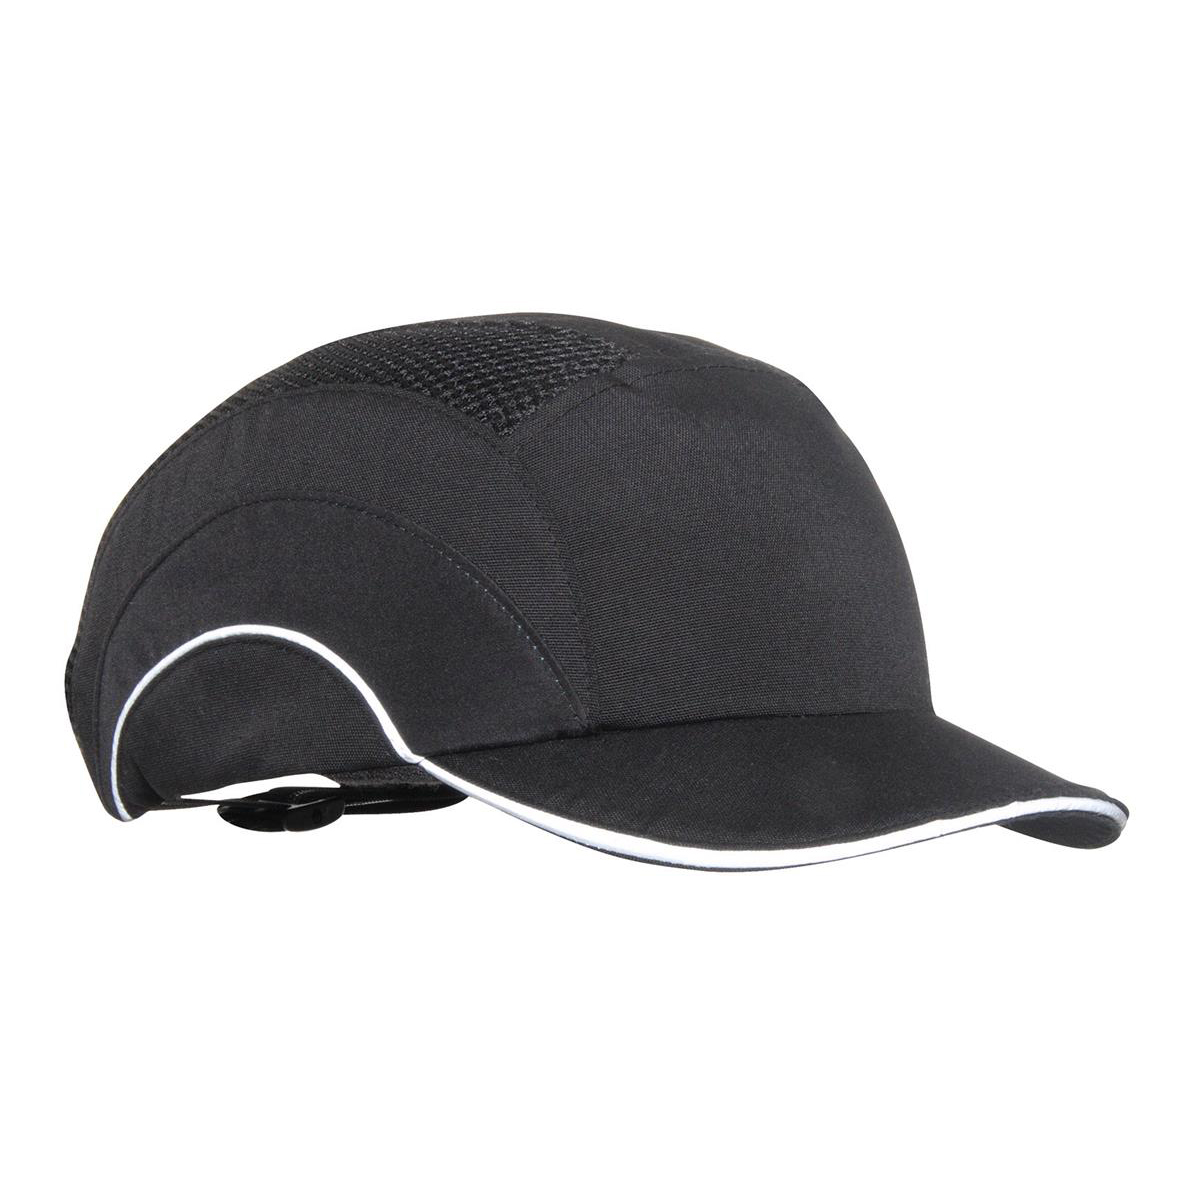 JSP Hard Cap A1 Plus Ventilated Adjustable with Short Peak 50mm Black Ref ABS000-001-100